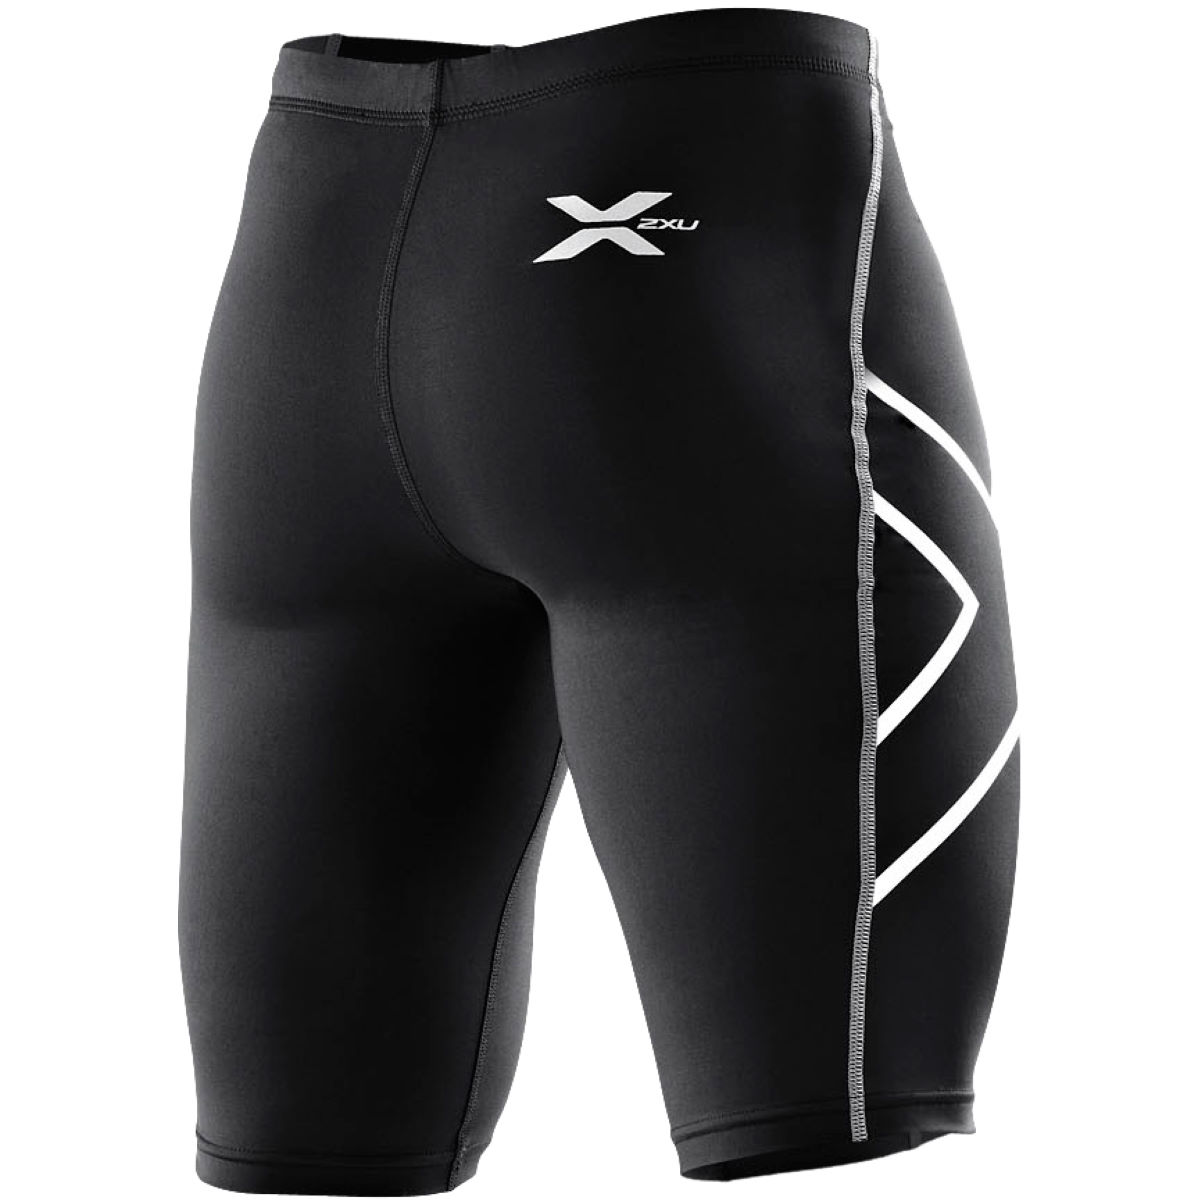 Cuissard 2XU Compression - S Black/Silver Logo Sous-vêtements compression